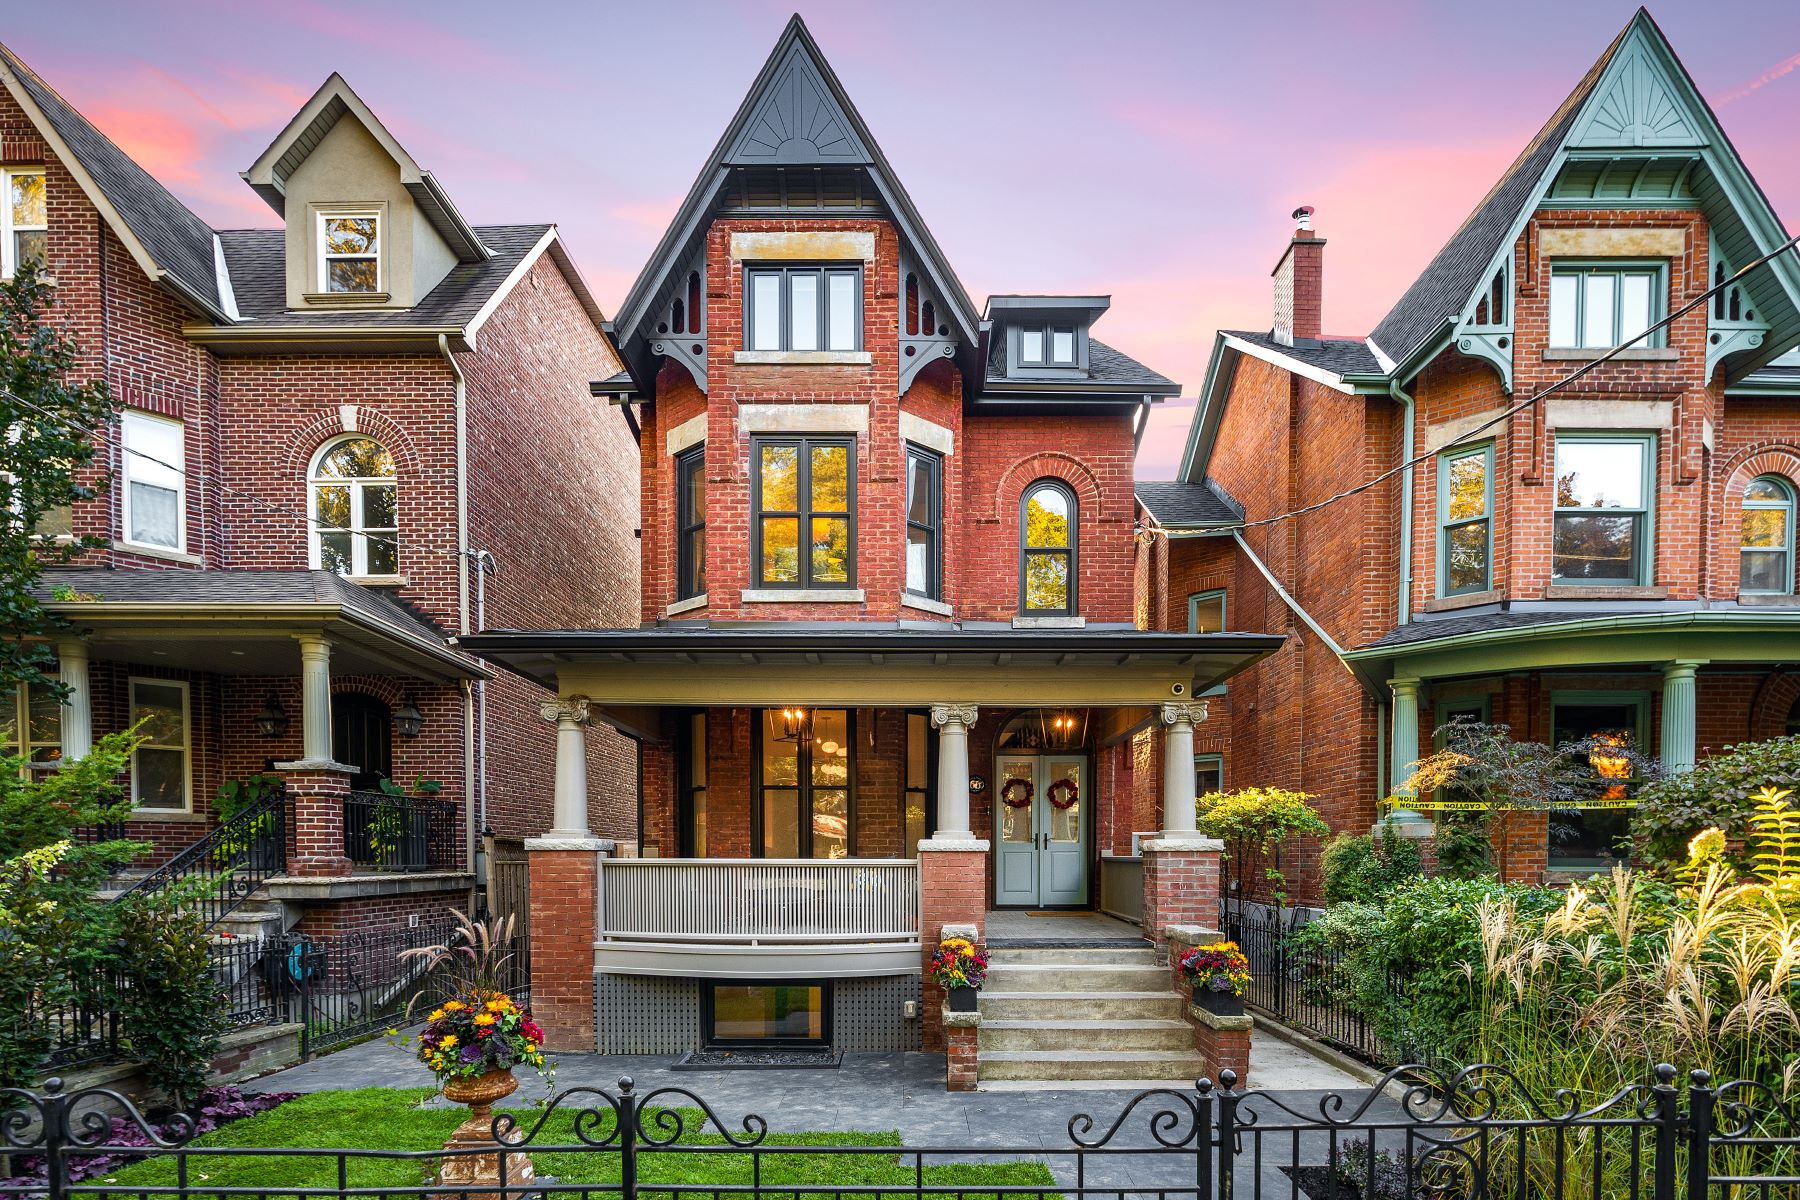 Single Family Homes for Sale at Sophisticated Urban Living 66 Brunswick Avenue Toronto, Ontario M5S 2L7 Canada